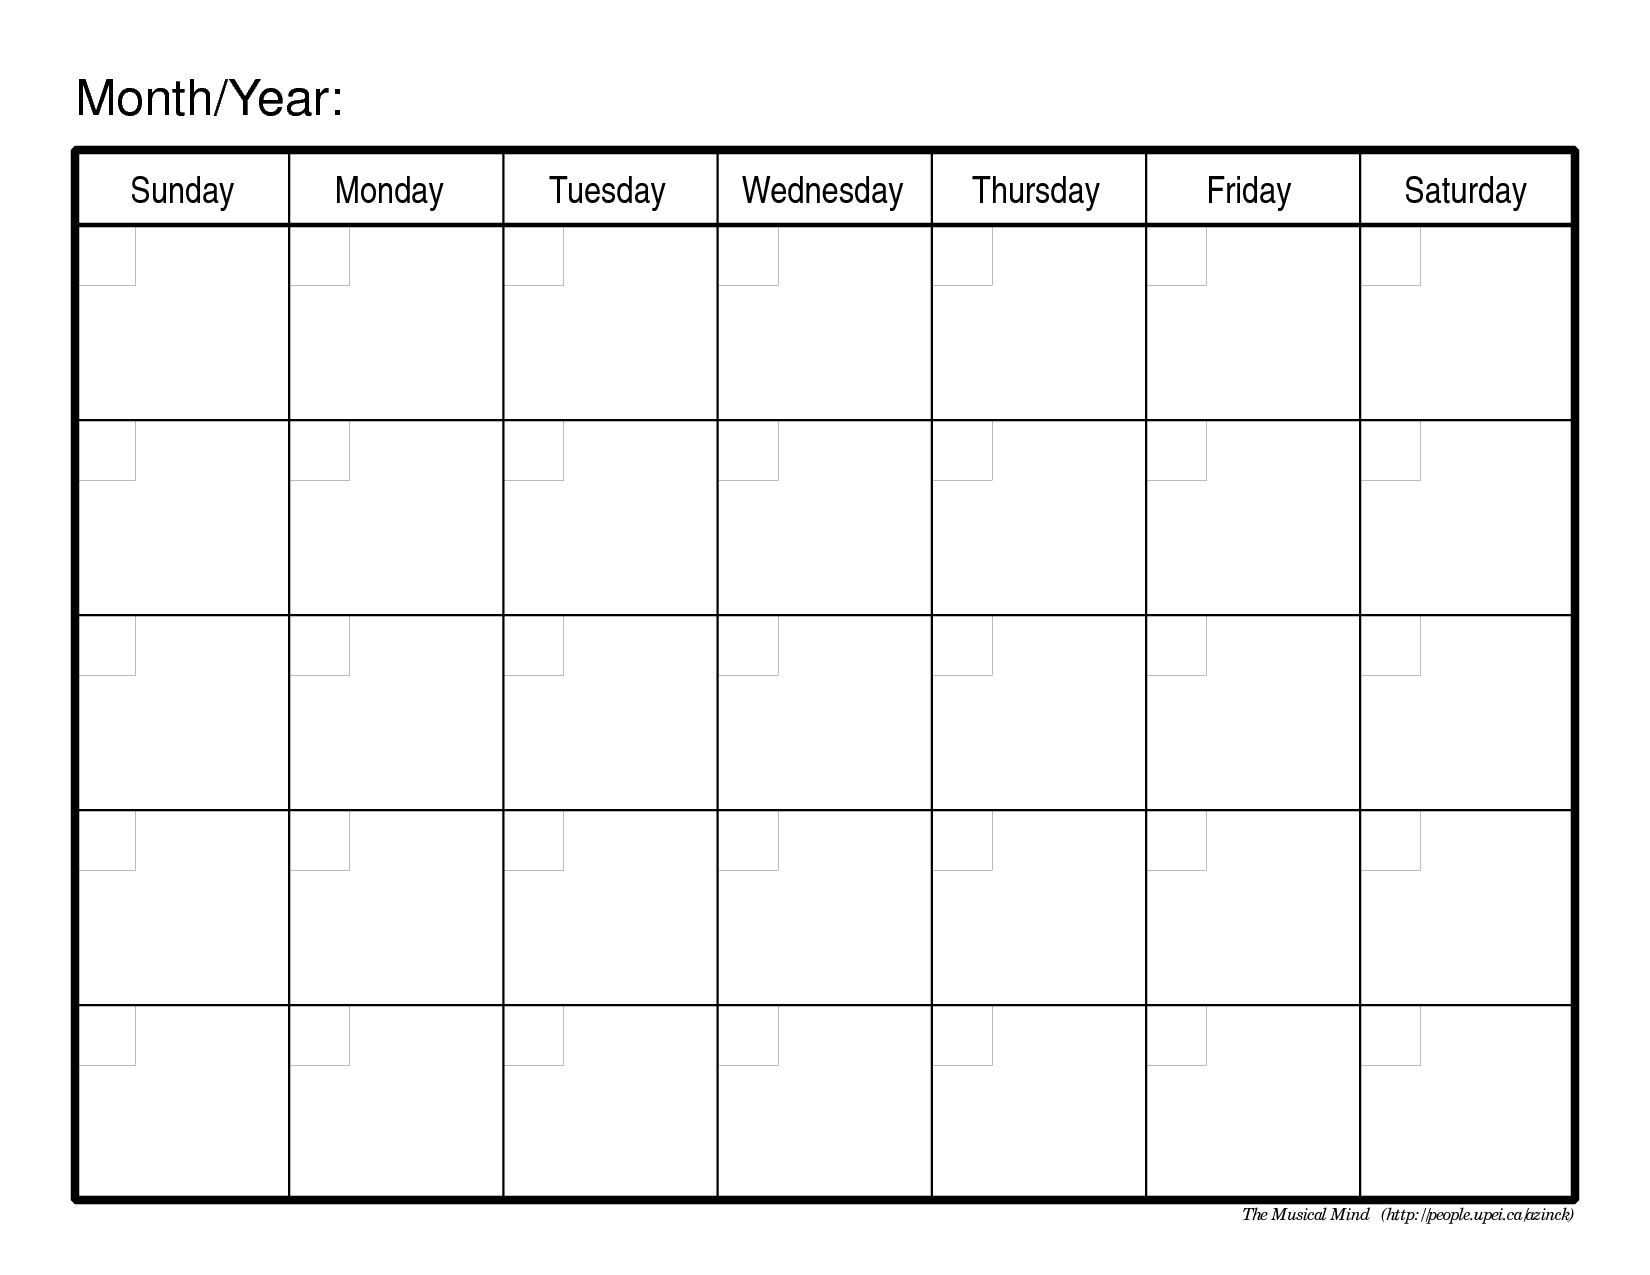 Monthly Schedule Calendar Template